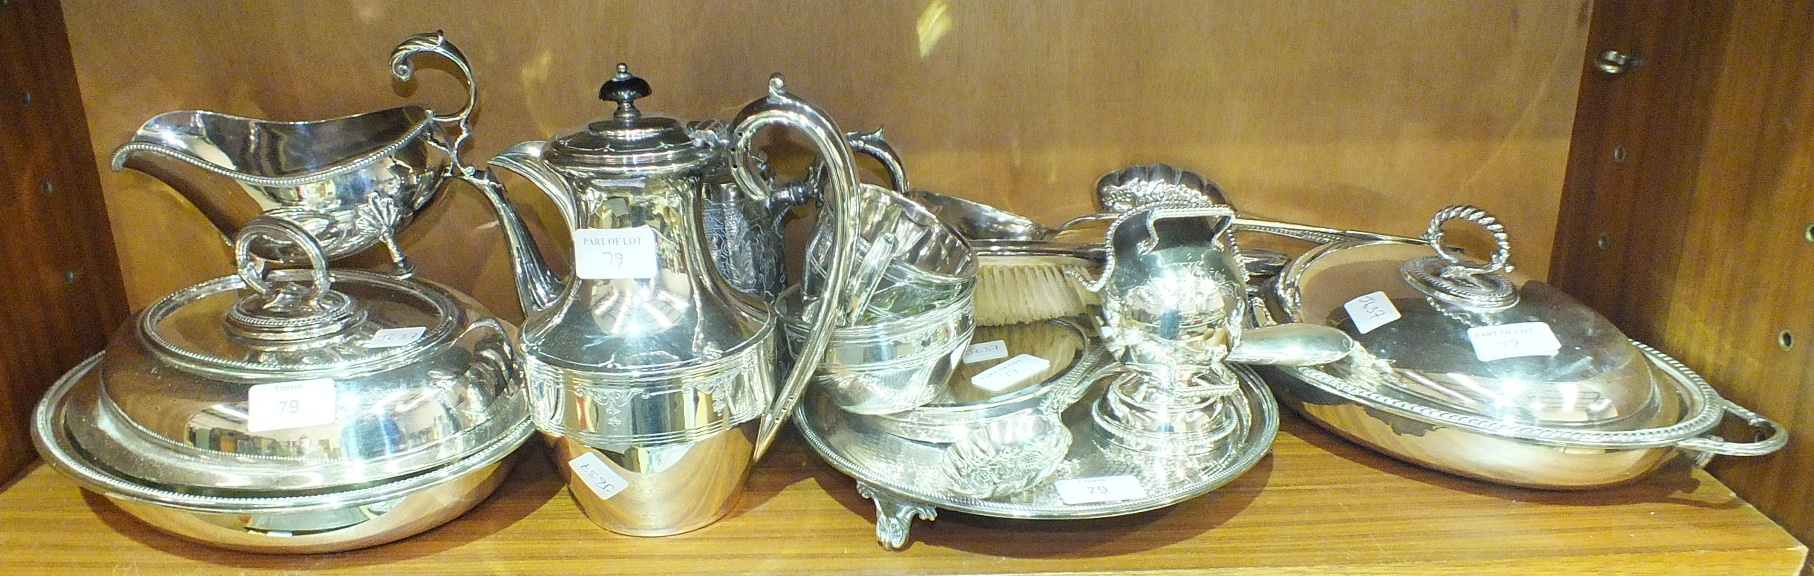 Lot 79 - Two plated entrée dishes and covers, a plated salver, a silver-backed hand mirror and hair brush and